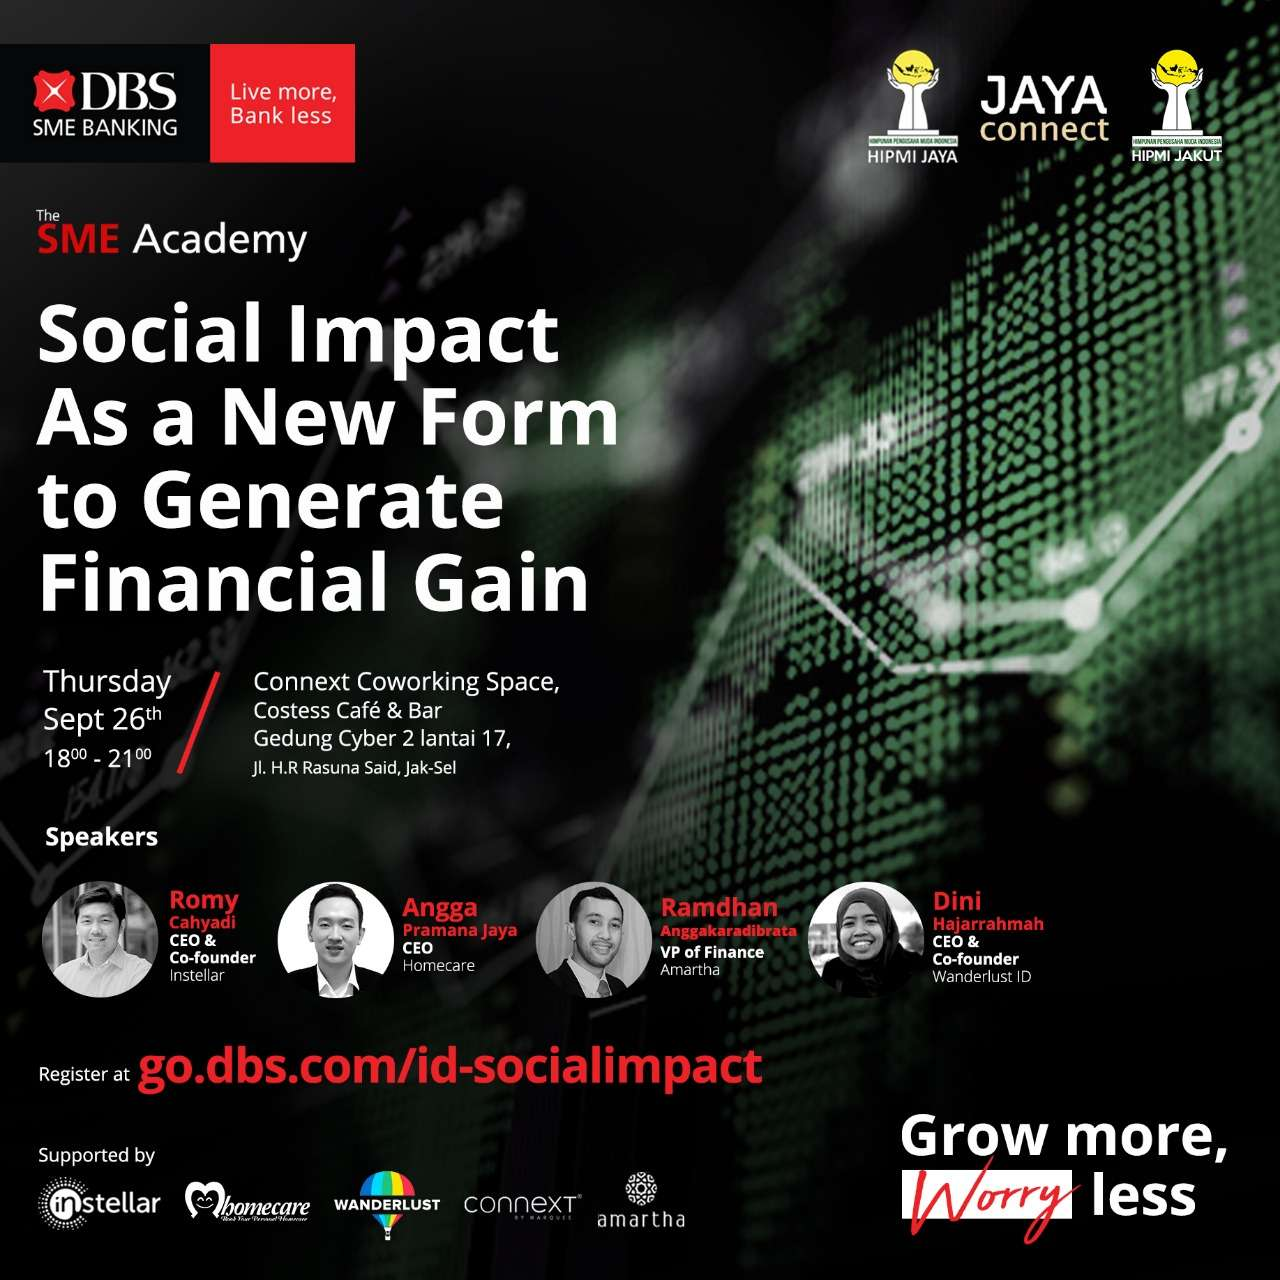 DBS SME Academy: Social Impact As a New Form to Generate Financial Gain